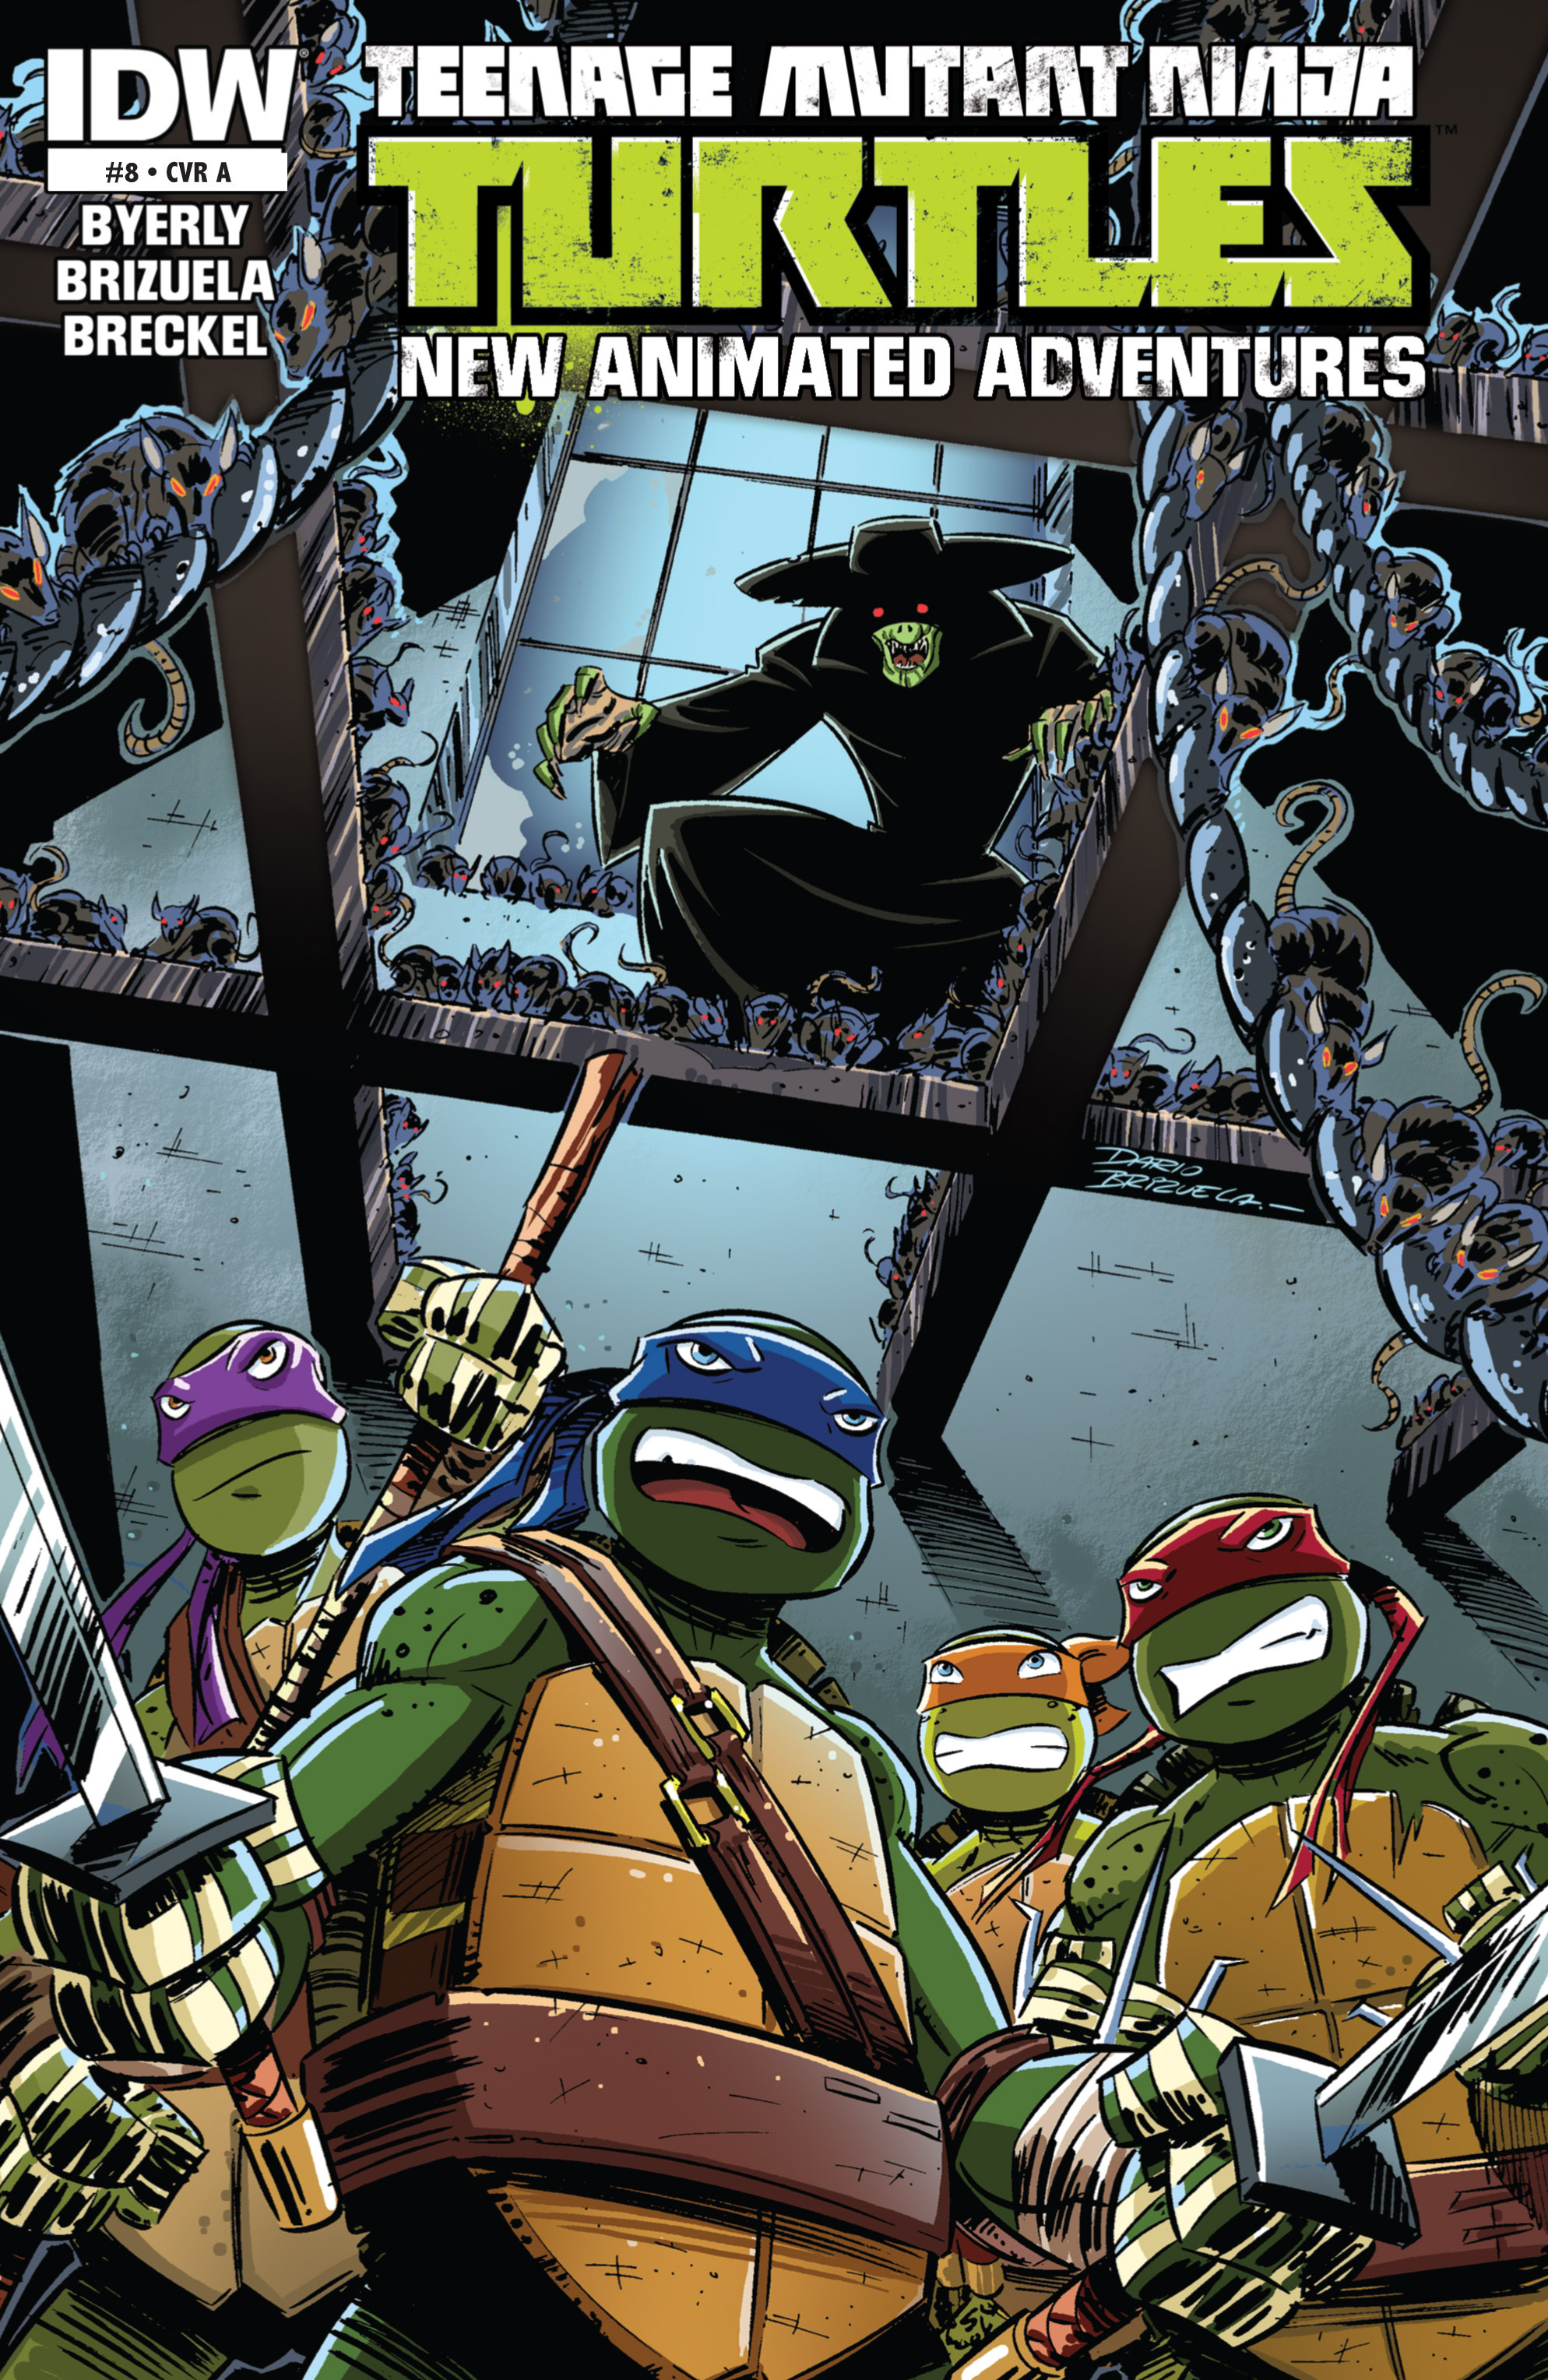 http://s6.picofile.com/file/8202693242/Teenage_Mutant_Ninja_Turtles_New_Animated_Adventures_008_000.jpg